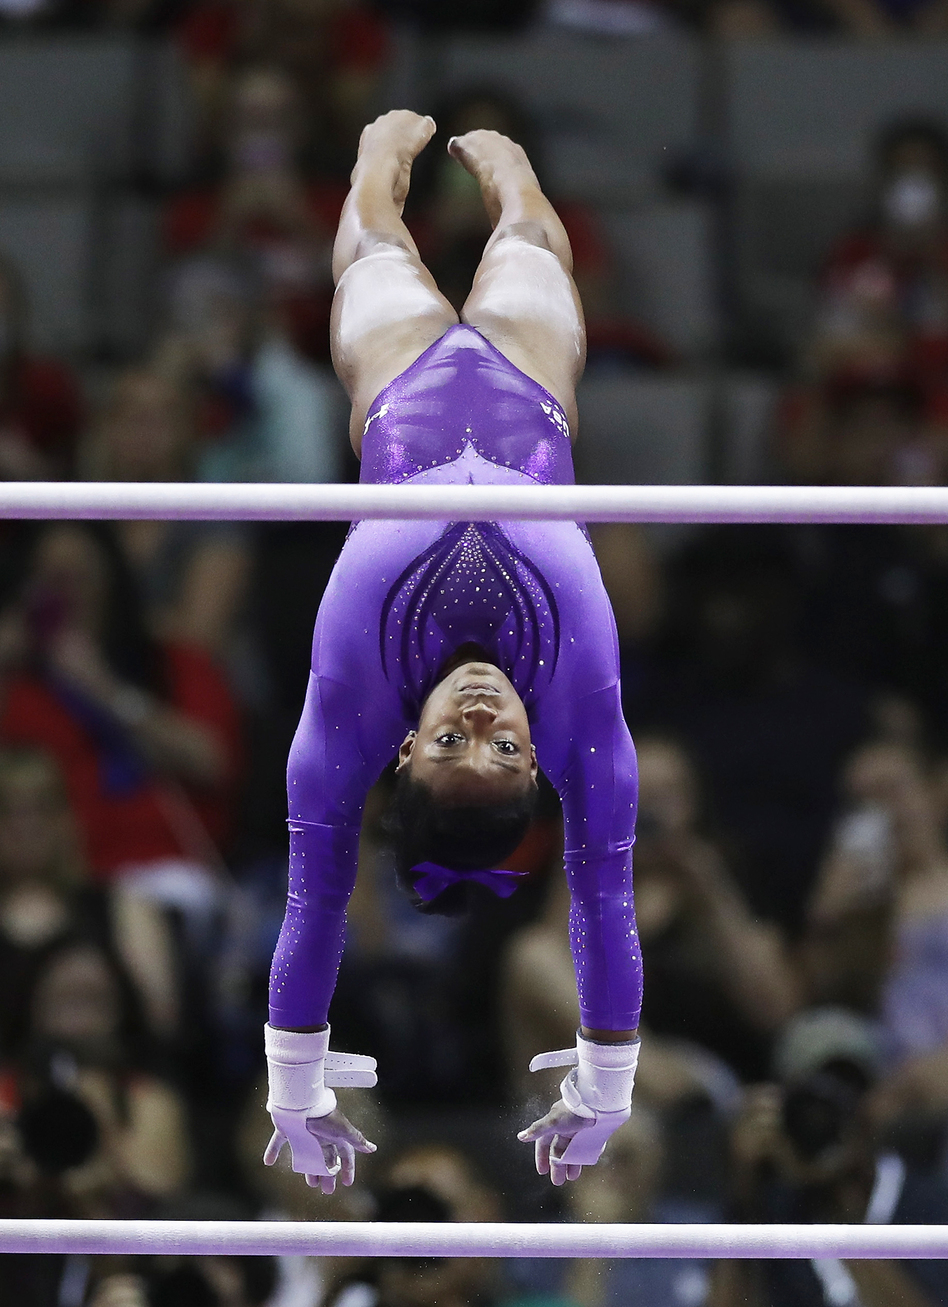 Simone Biles competes on the uneven bars during the U.S. Olympic Women's Gymnastics Team Trials in July in San Jose, Calif. (Getty Images)